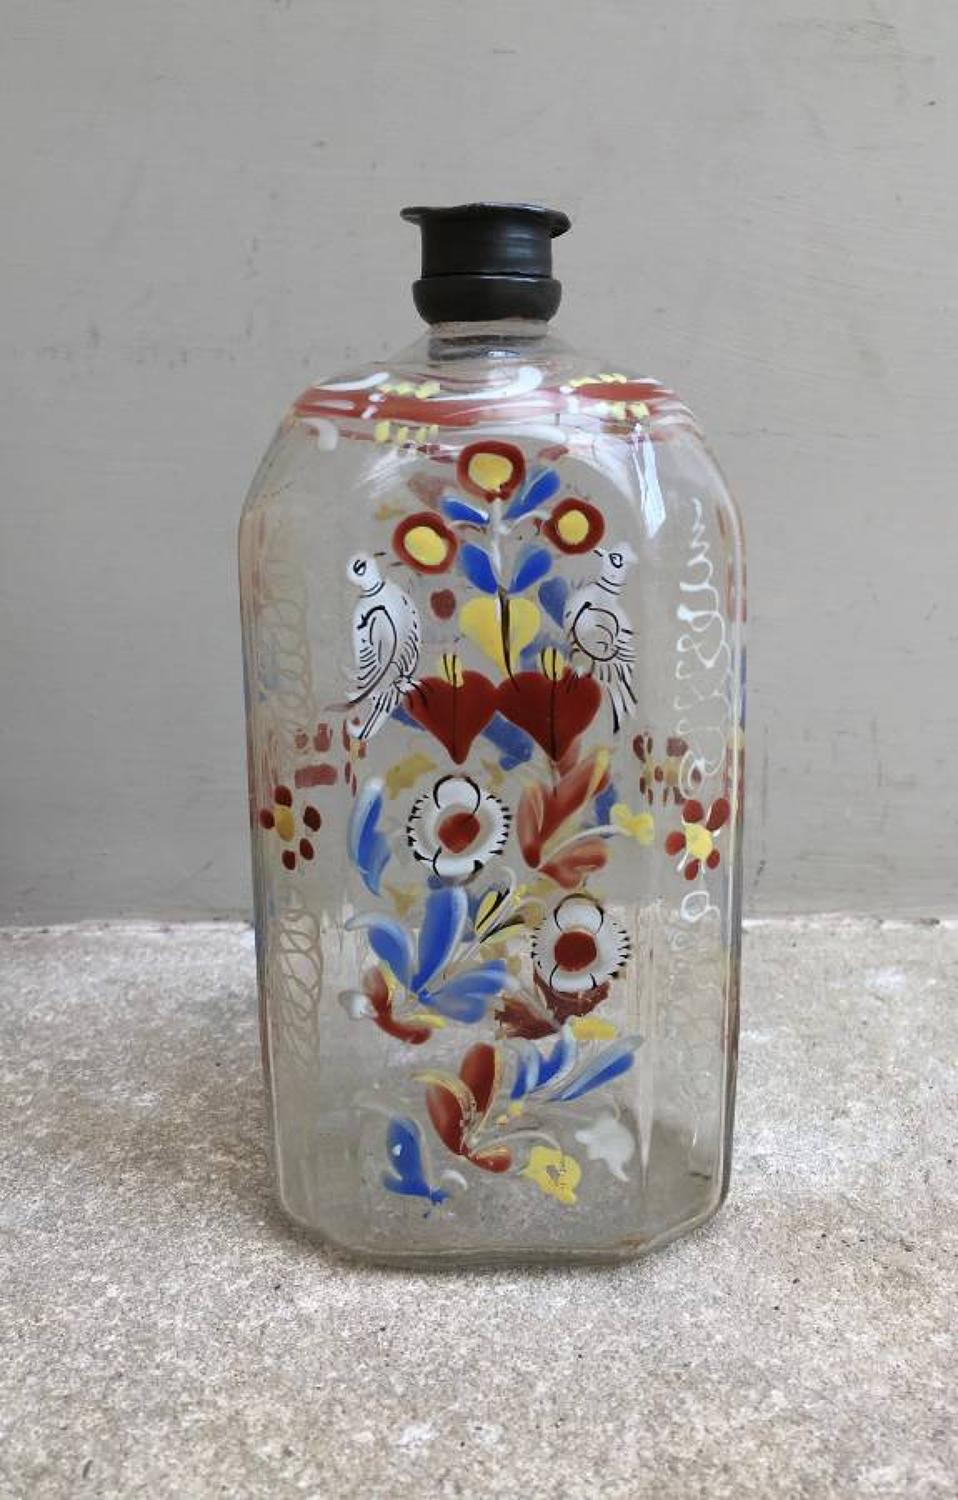 Rare 18th Century Glass Bottle with Enamel Decoration - Love Birds - O